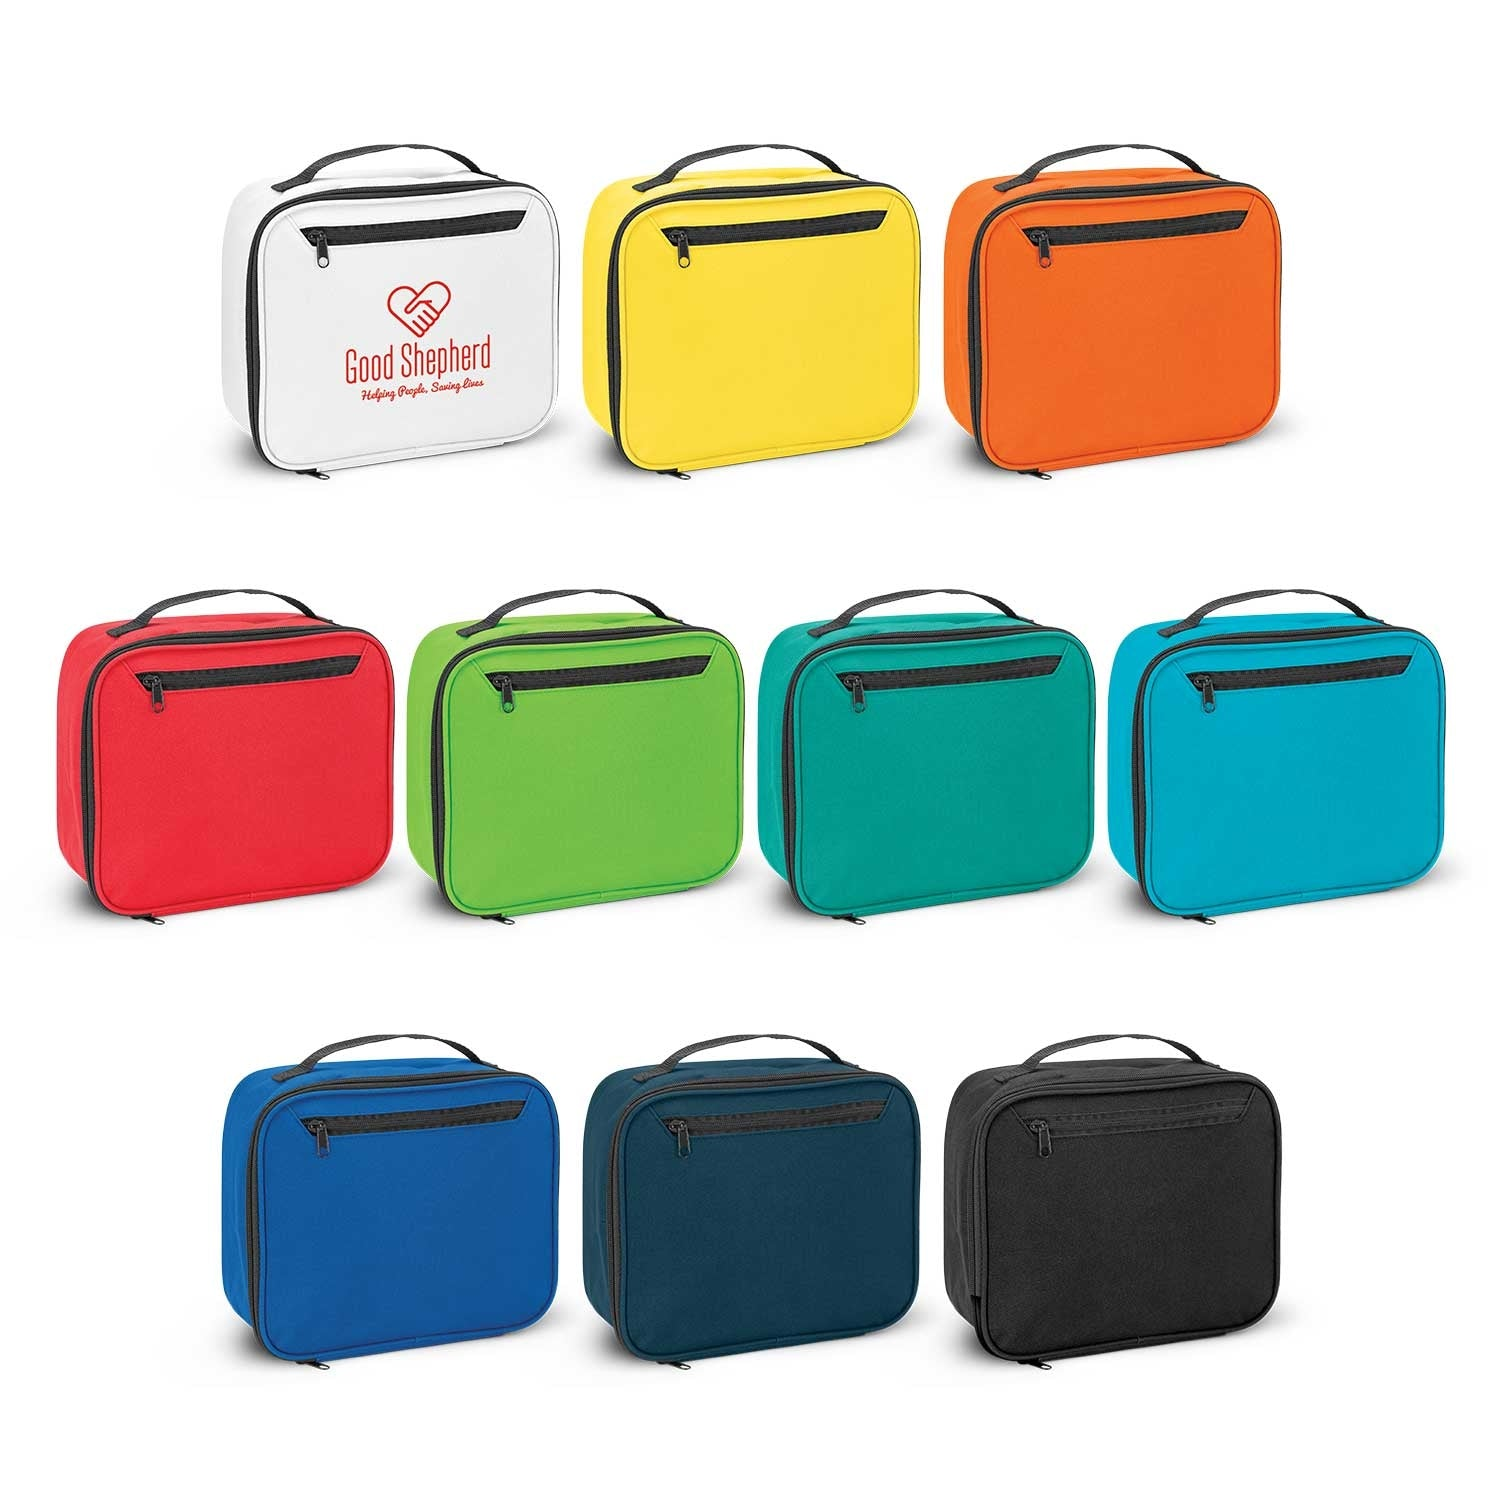 Stock 5 litre Lunch Cooler Bag (SNB-71T) - greenpac.com.au